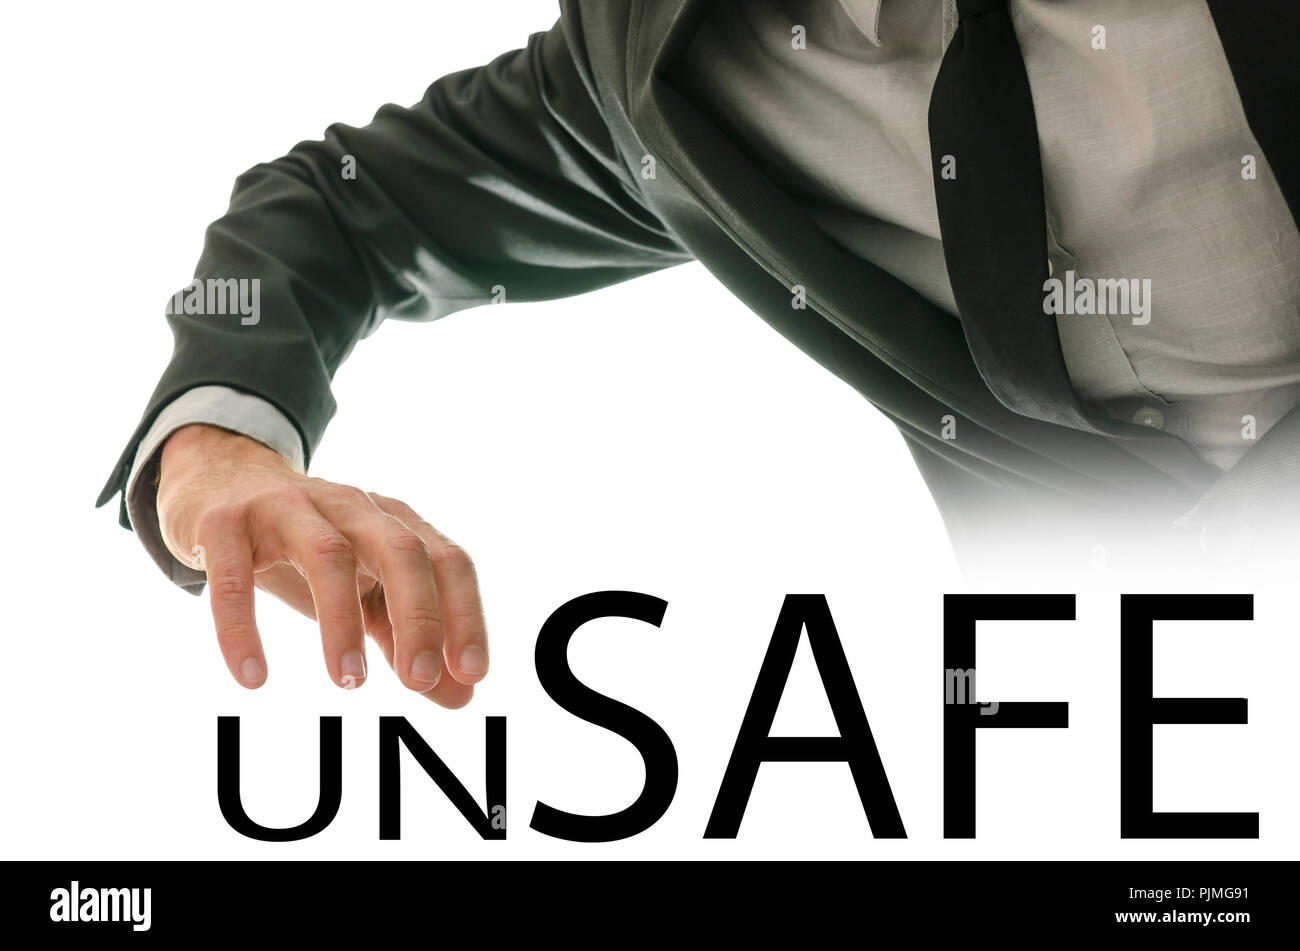 Businessman reaching his hand for the text Unsafe - Safe in a conceptual image of opposites between being secure or unsafe and open to risk. - Stock Image